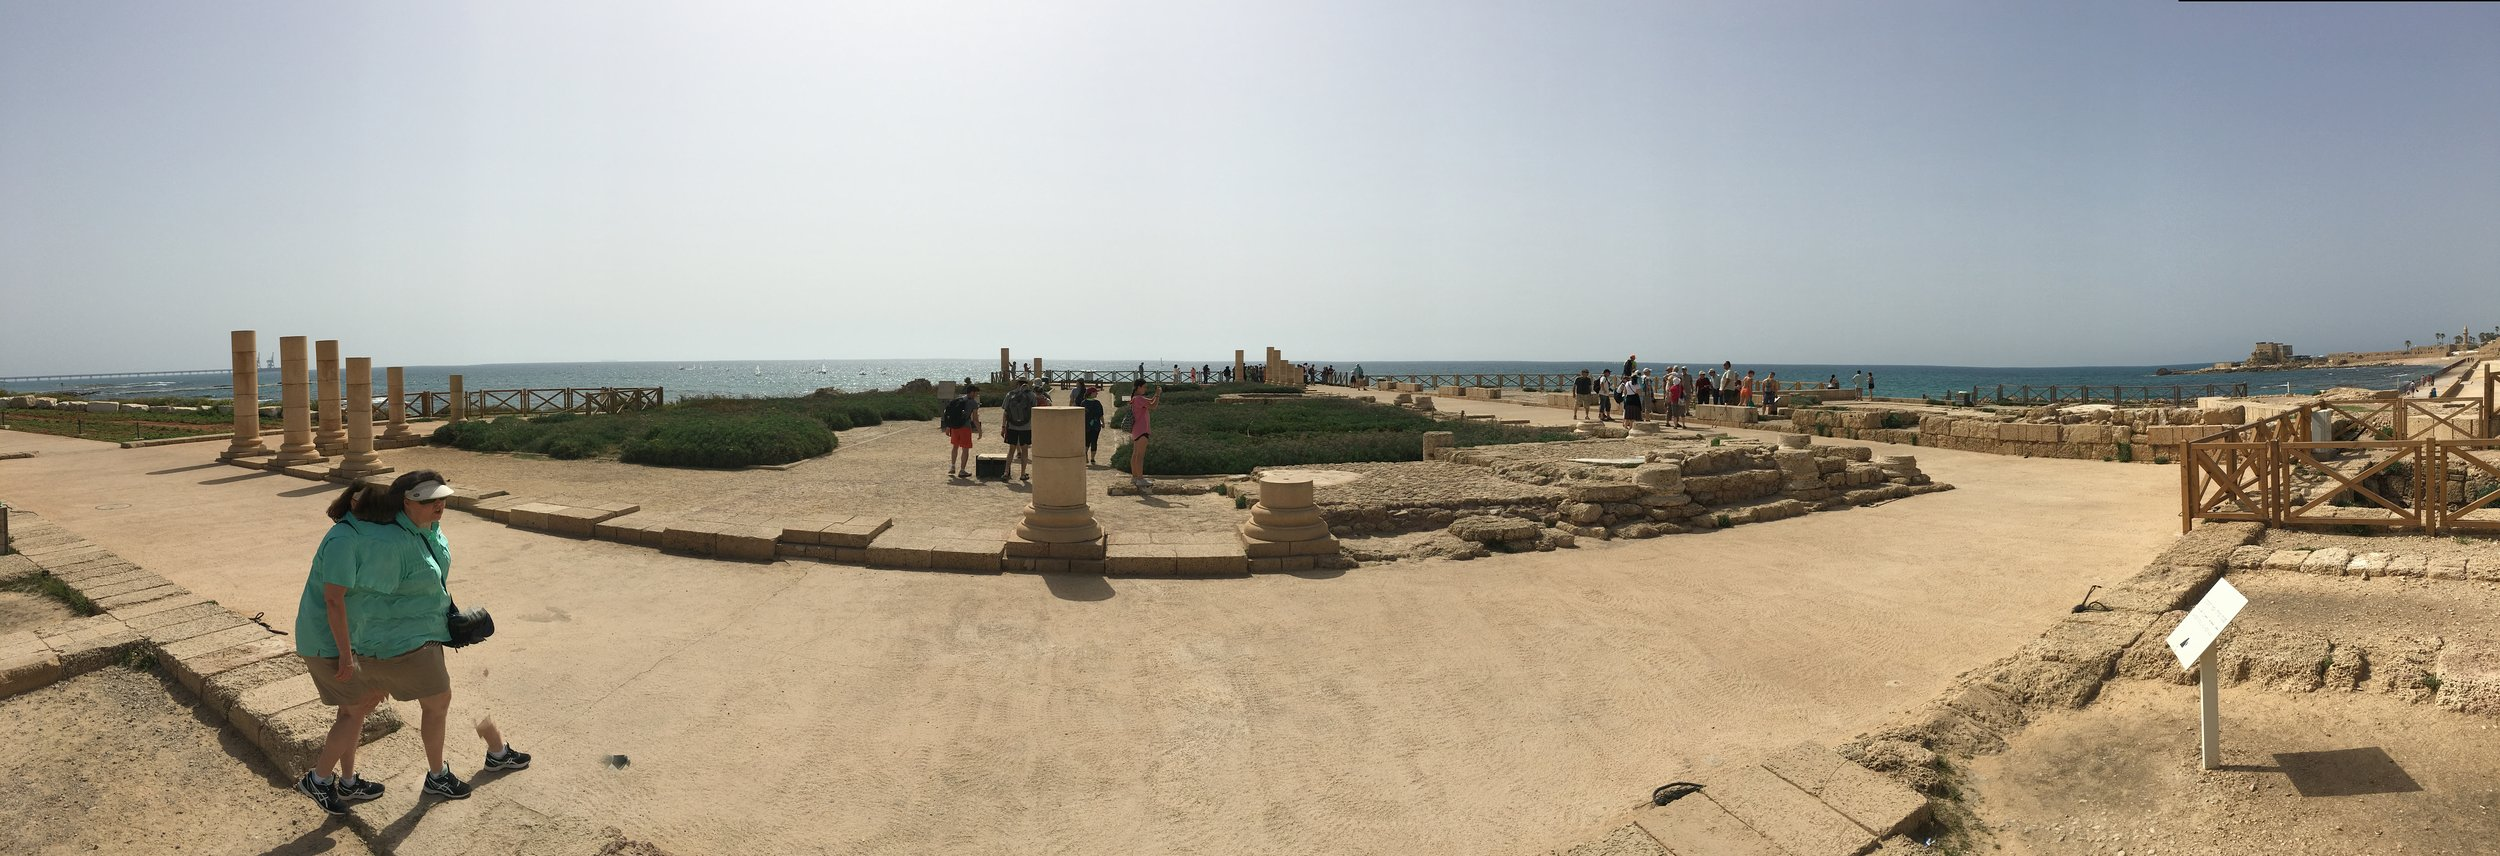 Here's what's left of Herod's palace on the sea in Caesarea... beautiful view!